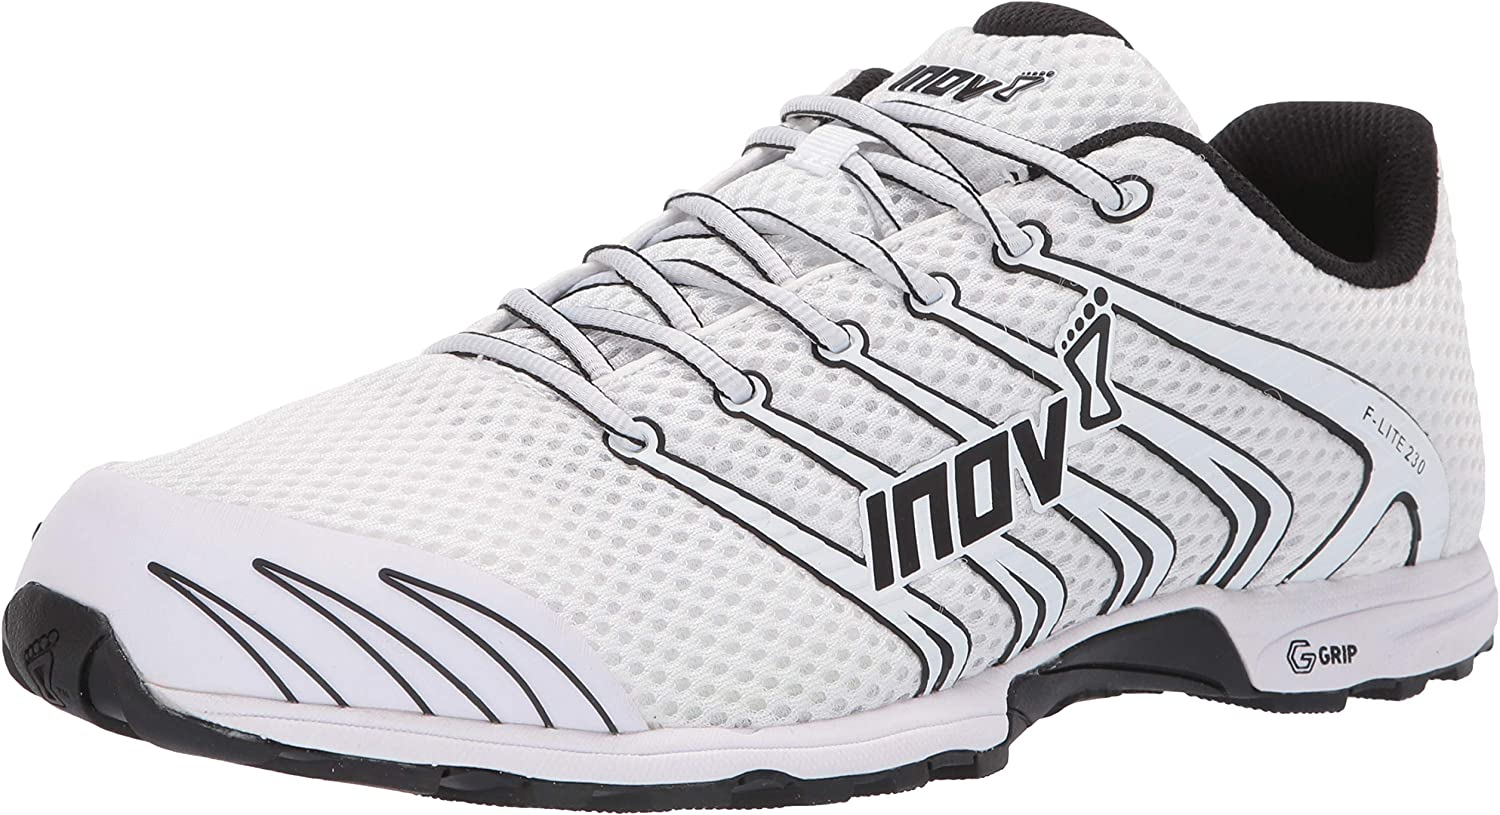 INOV-8 F-Lite 230 – Minimalist Cross Training Shoes – Classic Model – Graphene Grip – White Black 7 M US